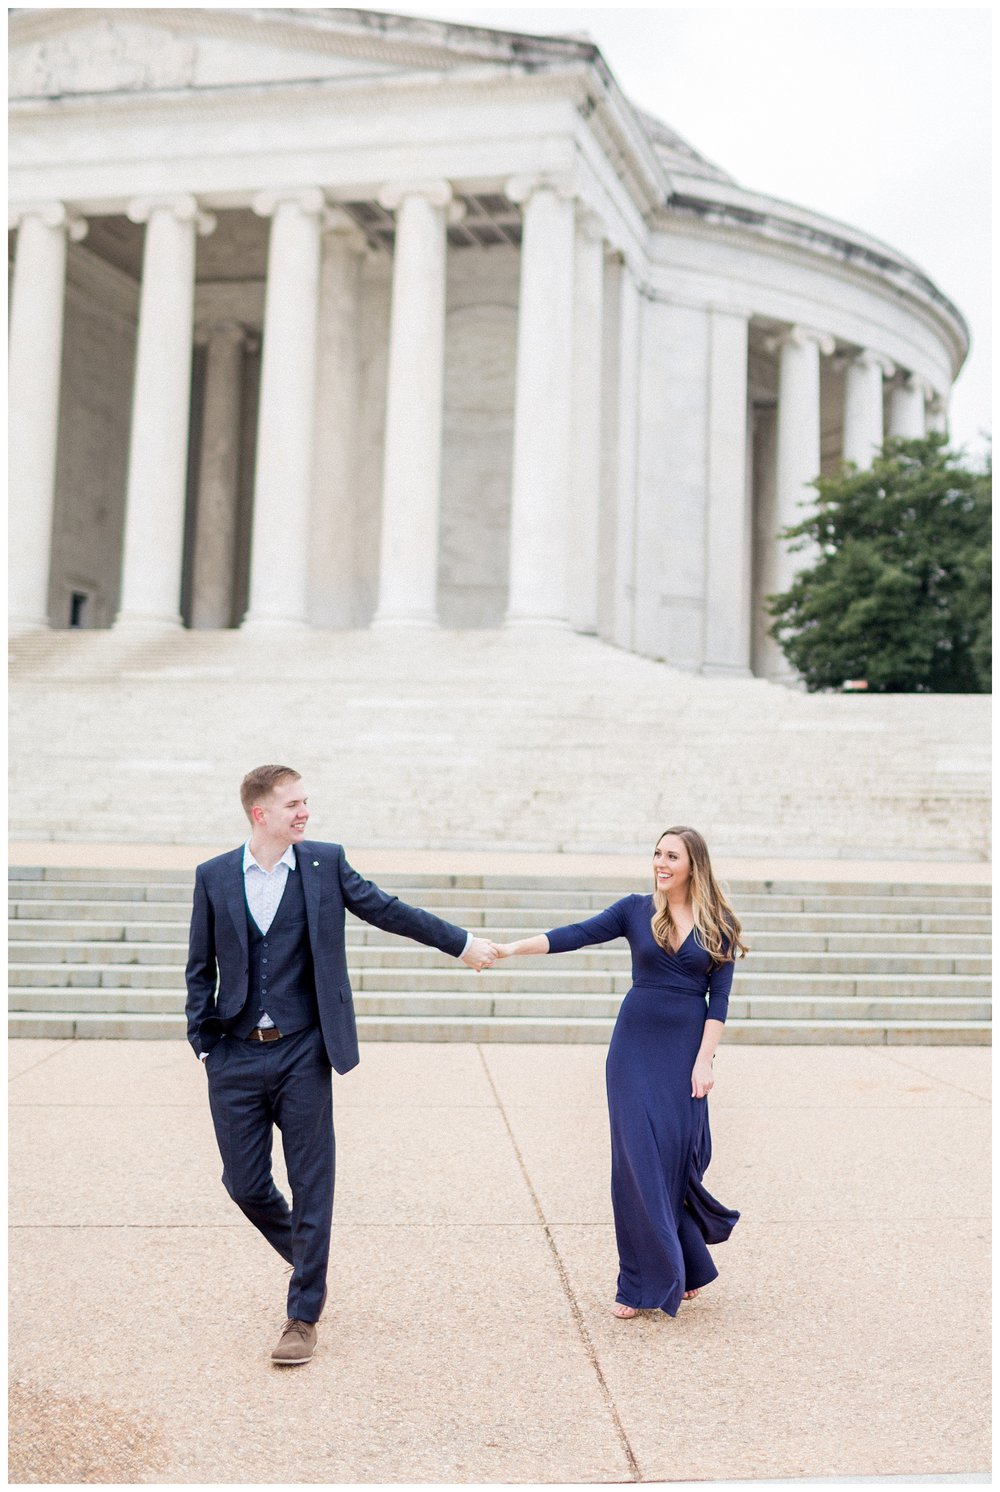 Washingon DC Engagement Photos | Jefferson Memorial Engagement | Kir Tuben_0008.jpg